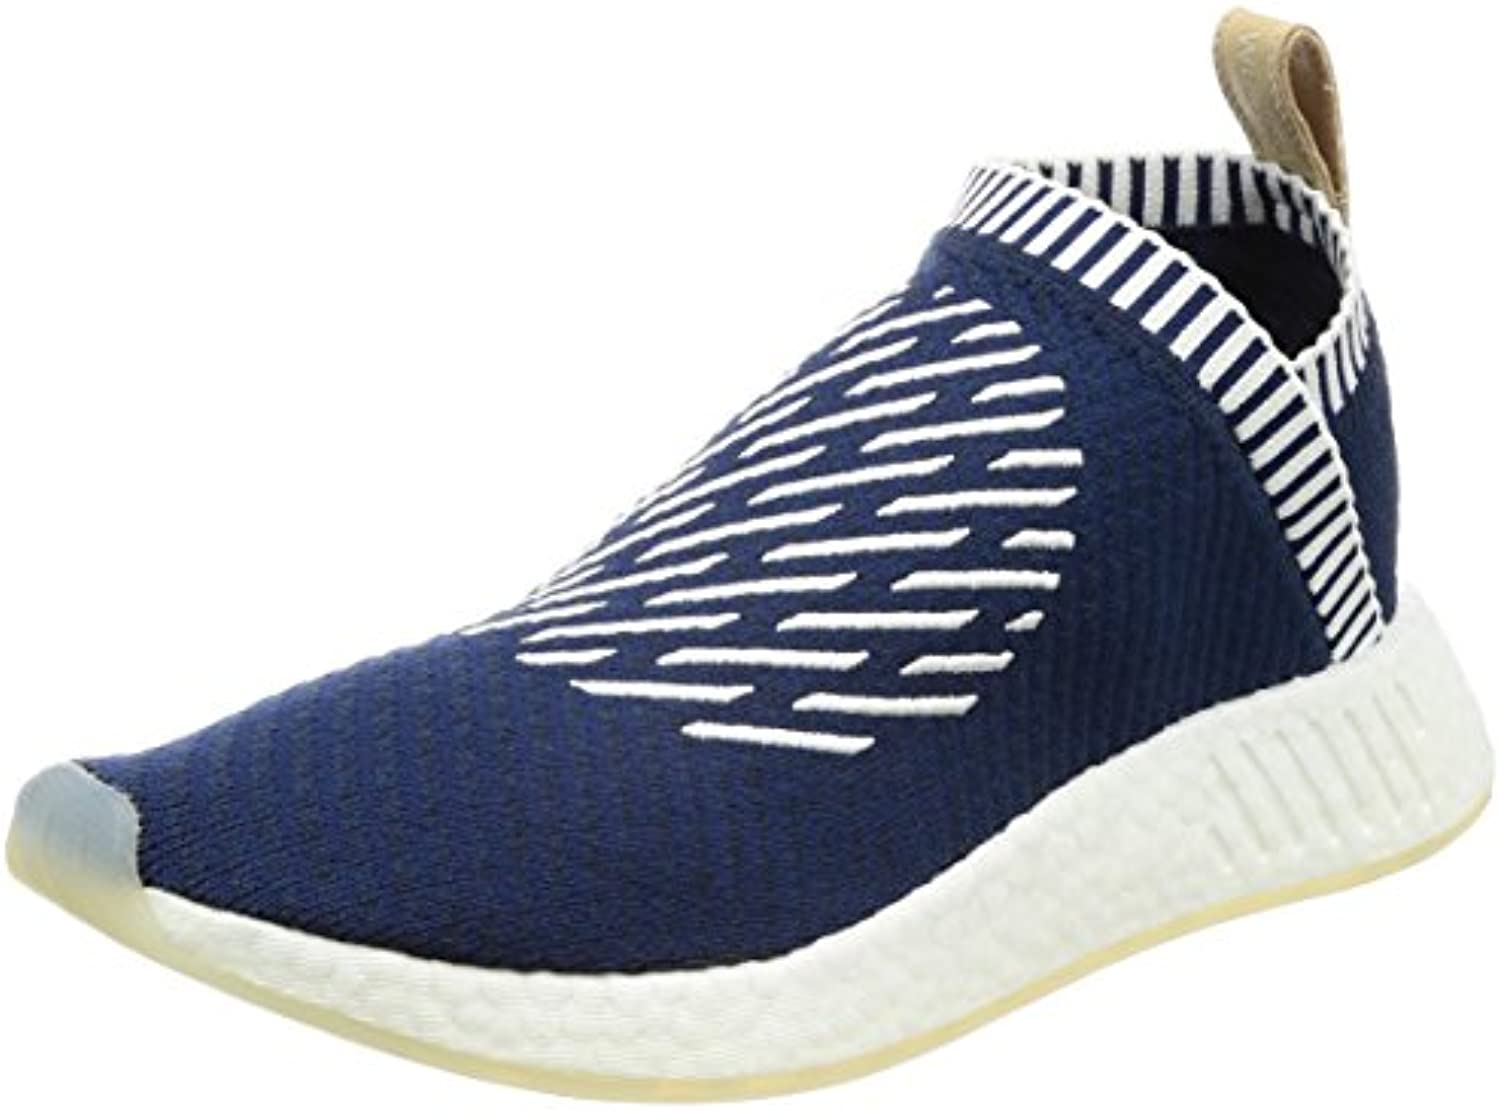 adidas Originals NMD_CS2 PK, collegiate navy-ftwr white-st pale nude